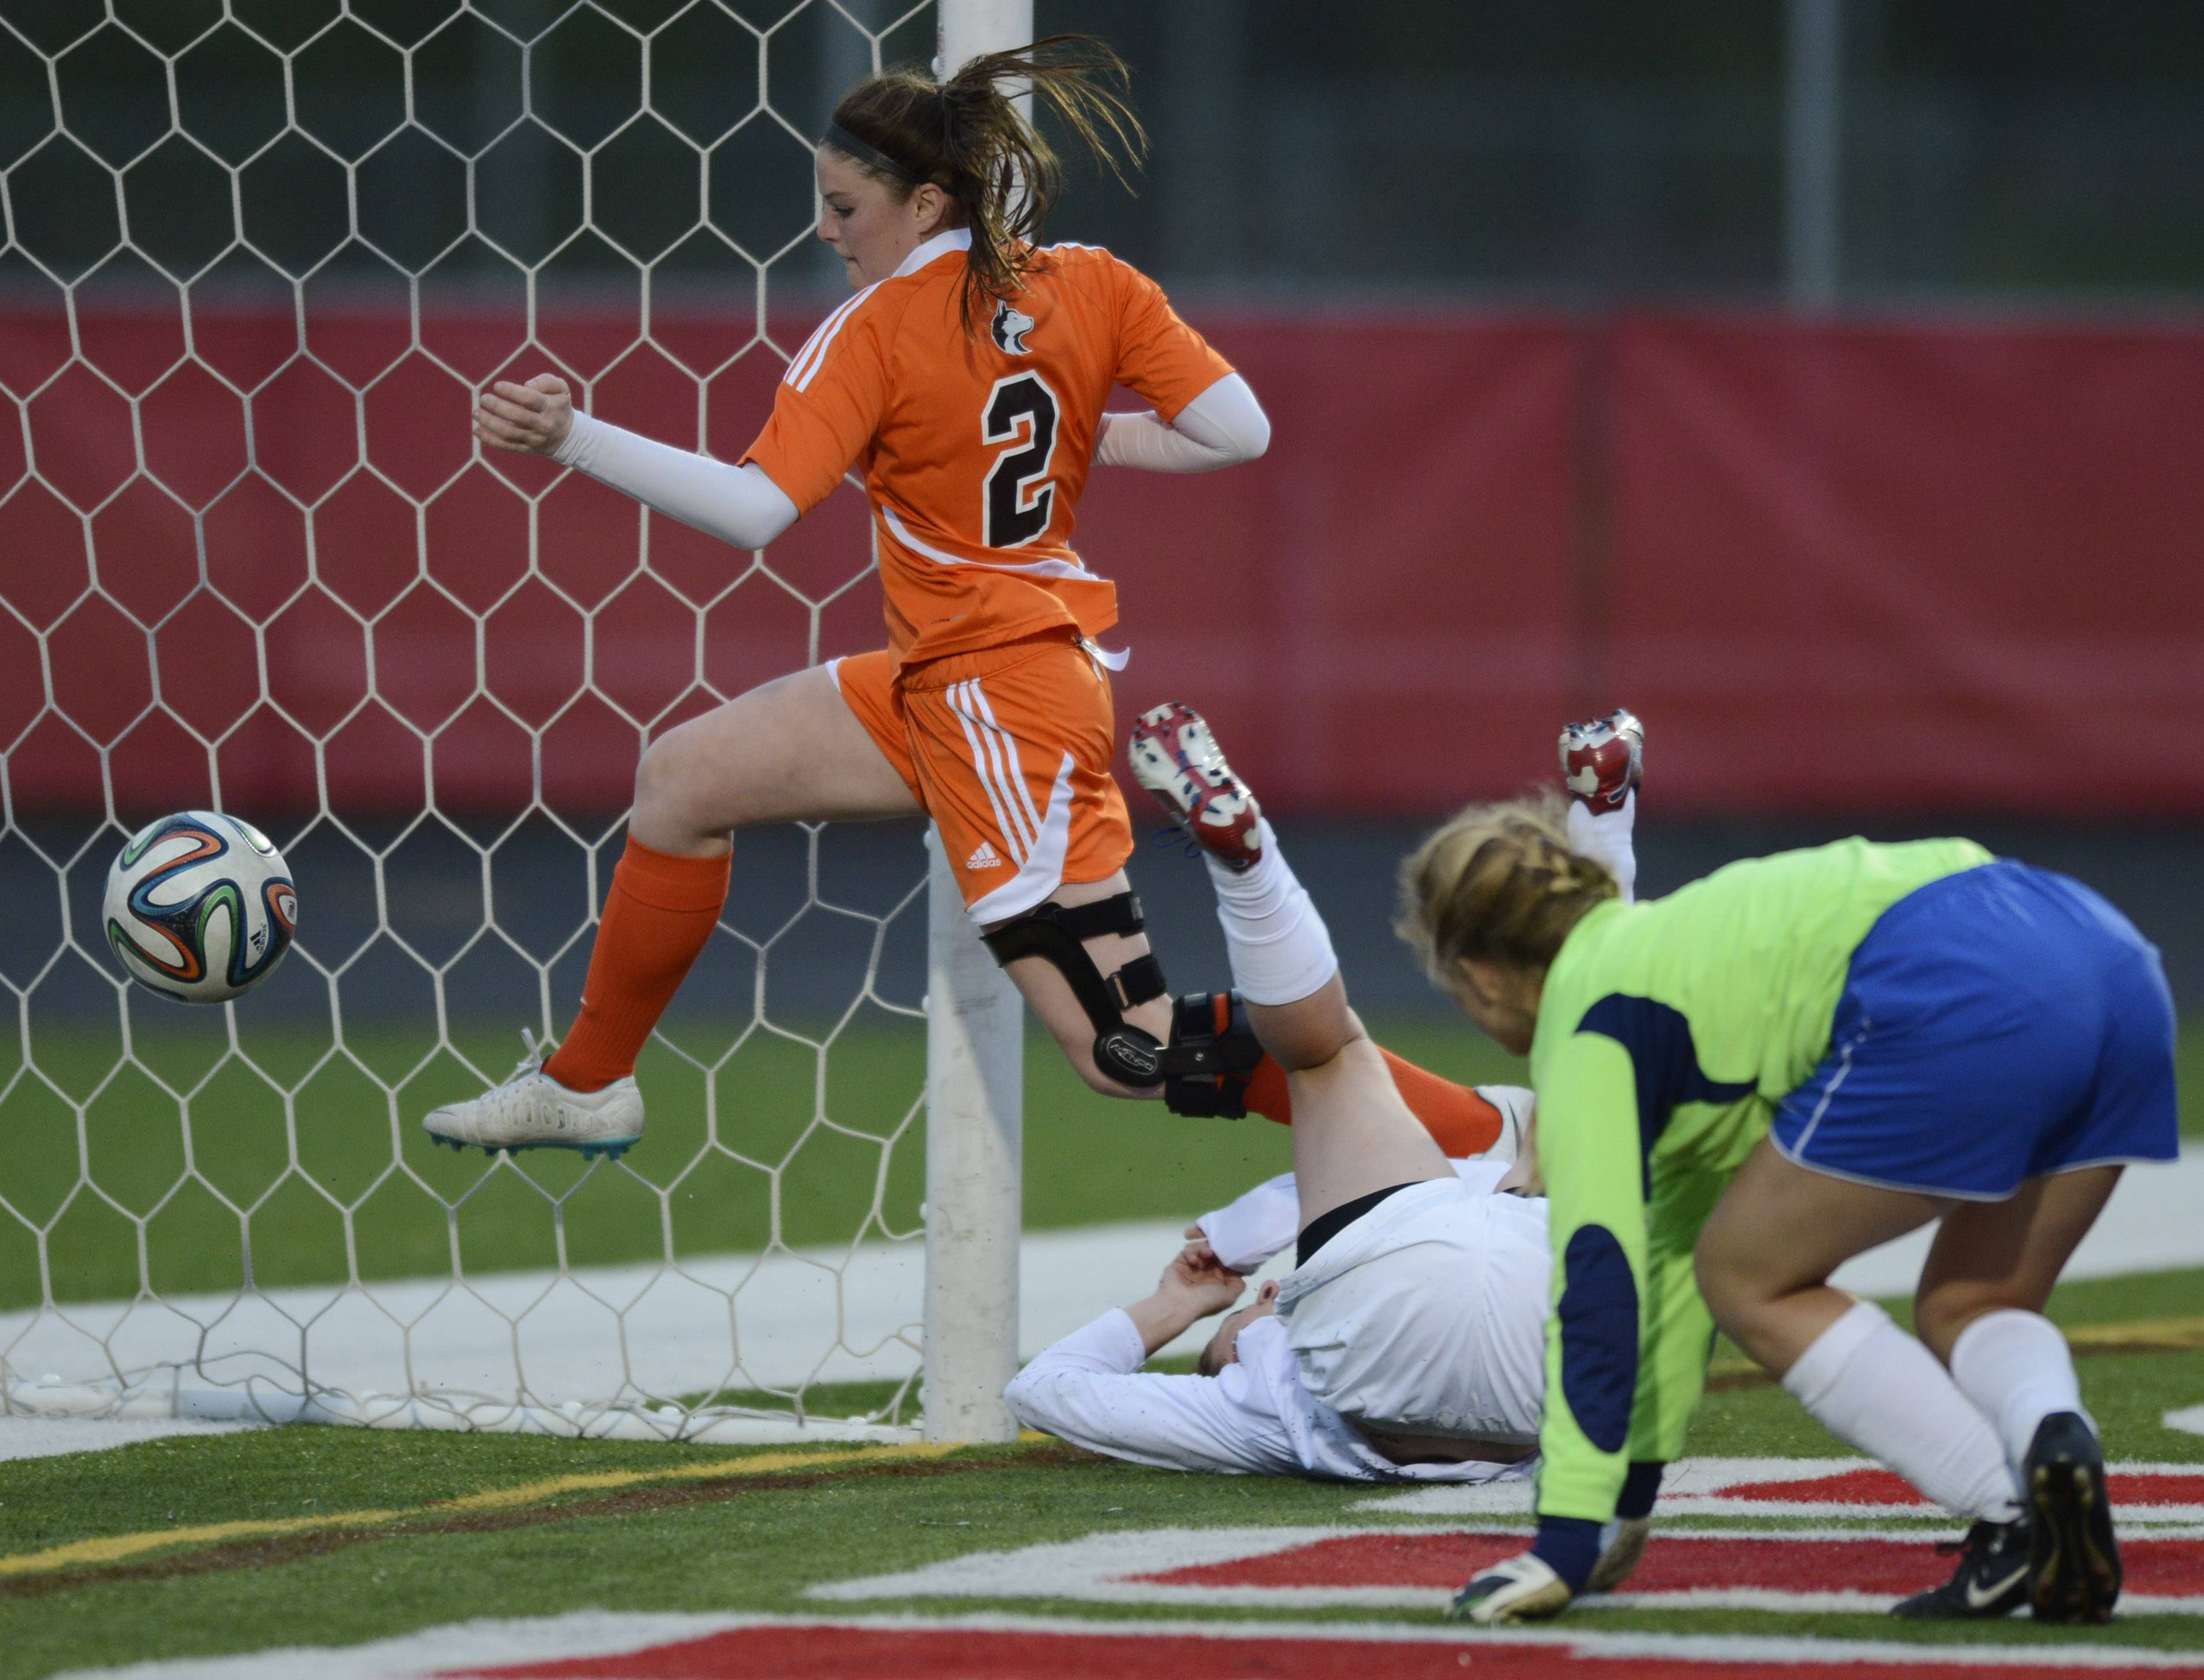 Hersey's Megan Brant, left, is unable to keep the ball from crossing the goal line on a shot by Barrington's Maesyn Poidomani as Hersey goalkeeper Morgan Harris tries to get back into position during the Mid-Suburban League championship game at Barrington on Wednesday.